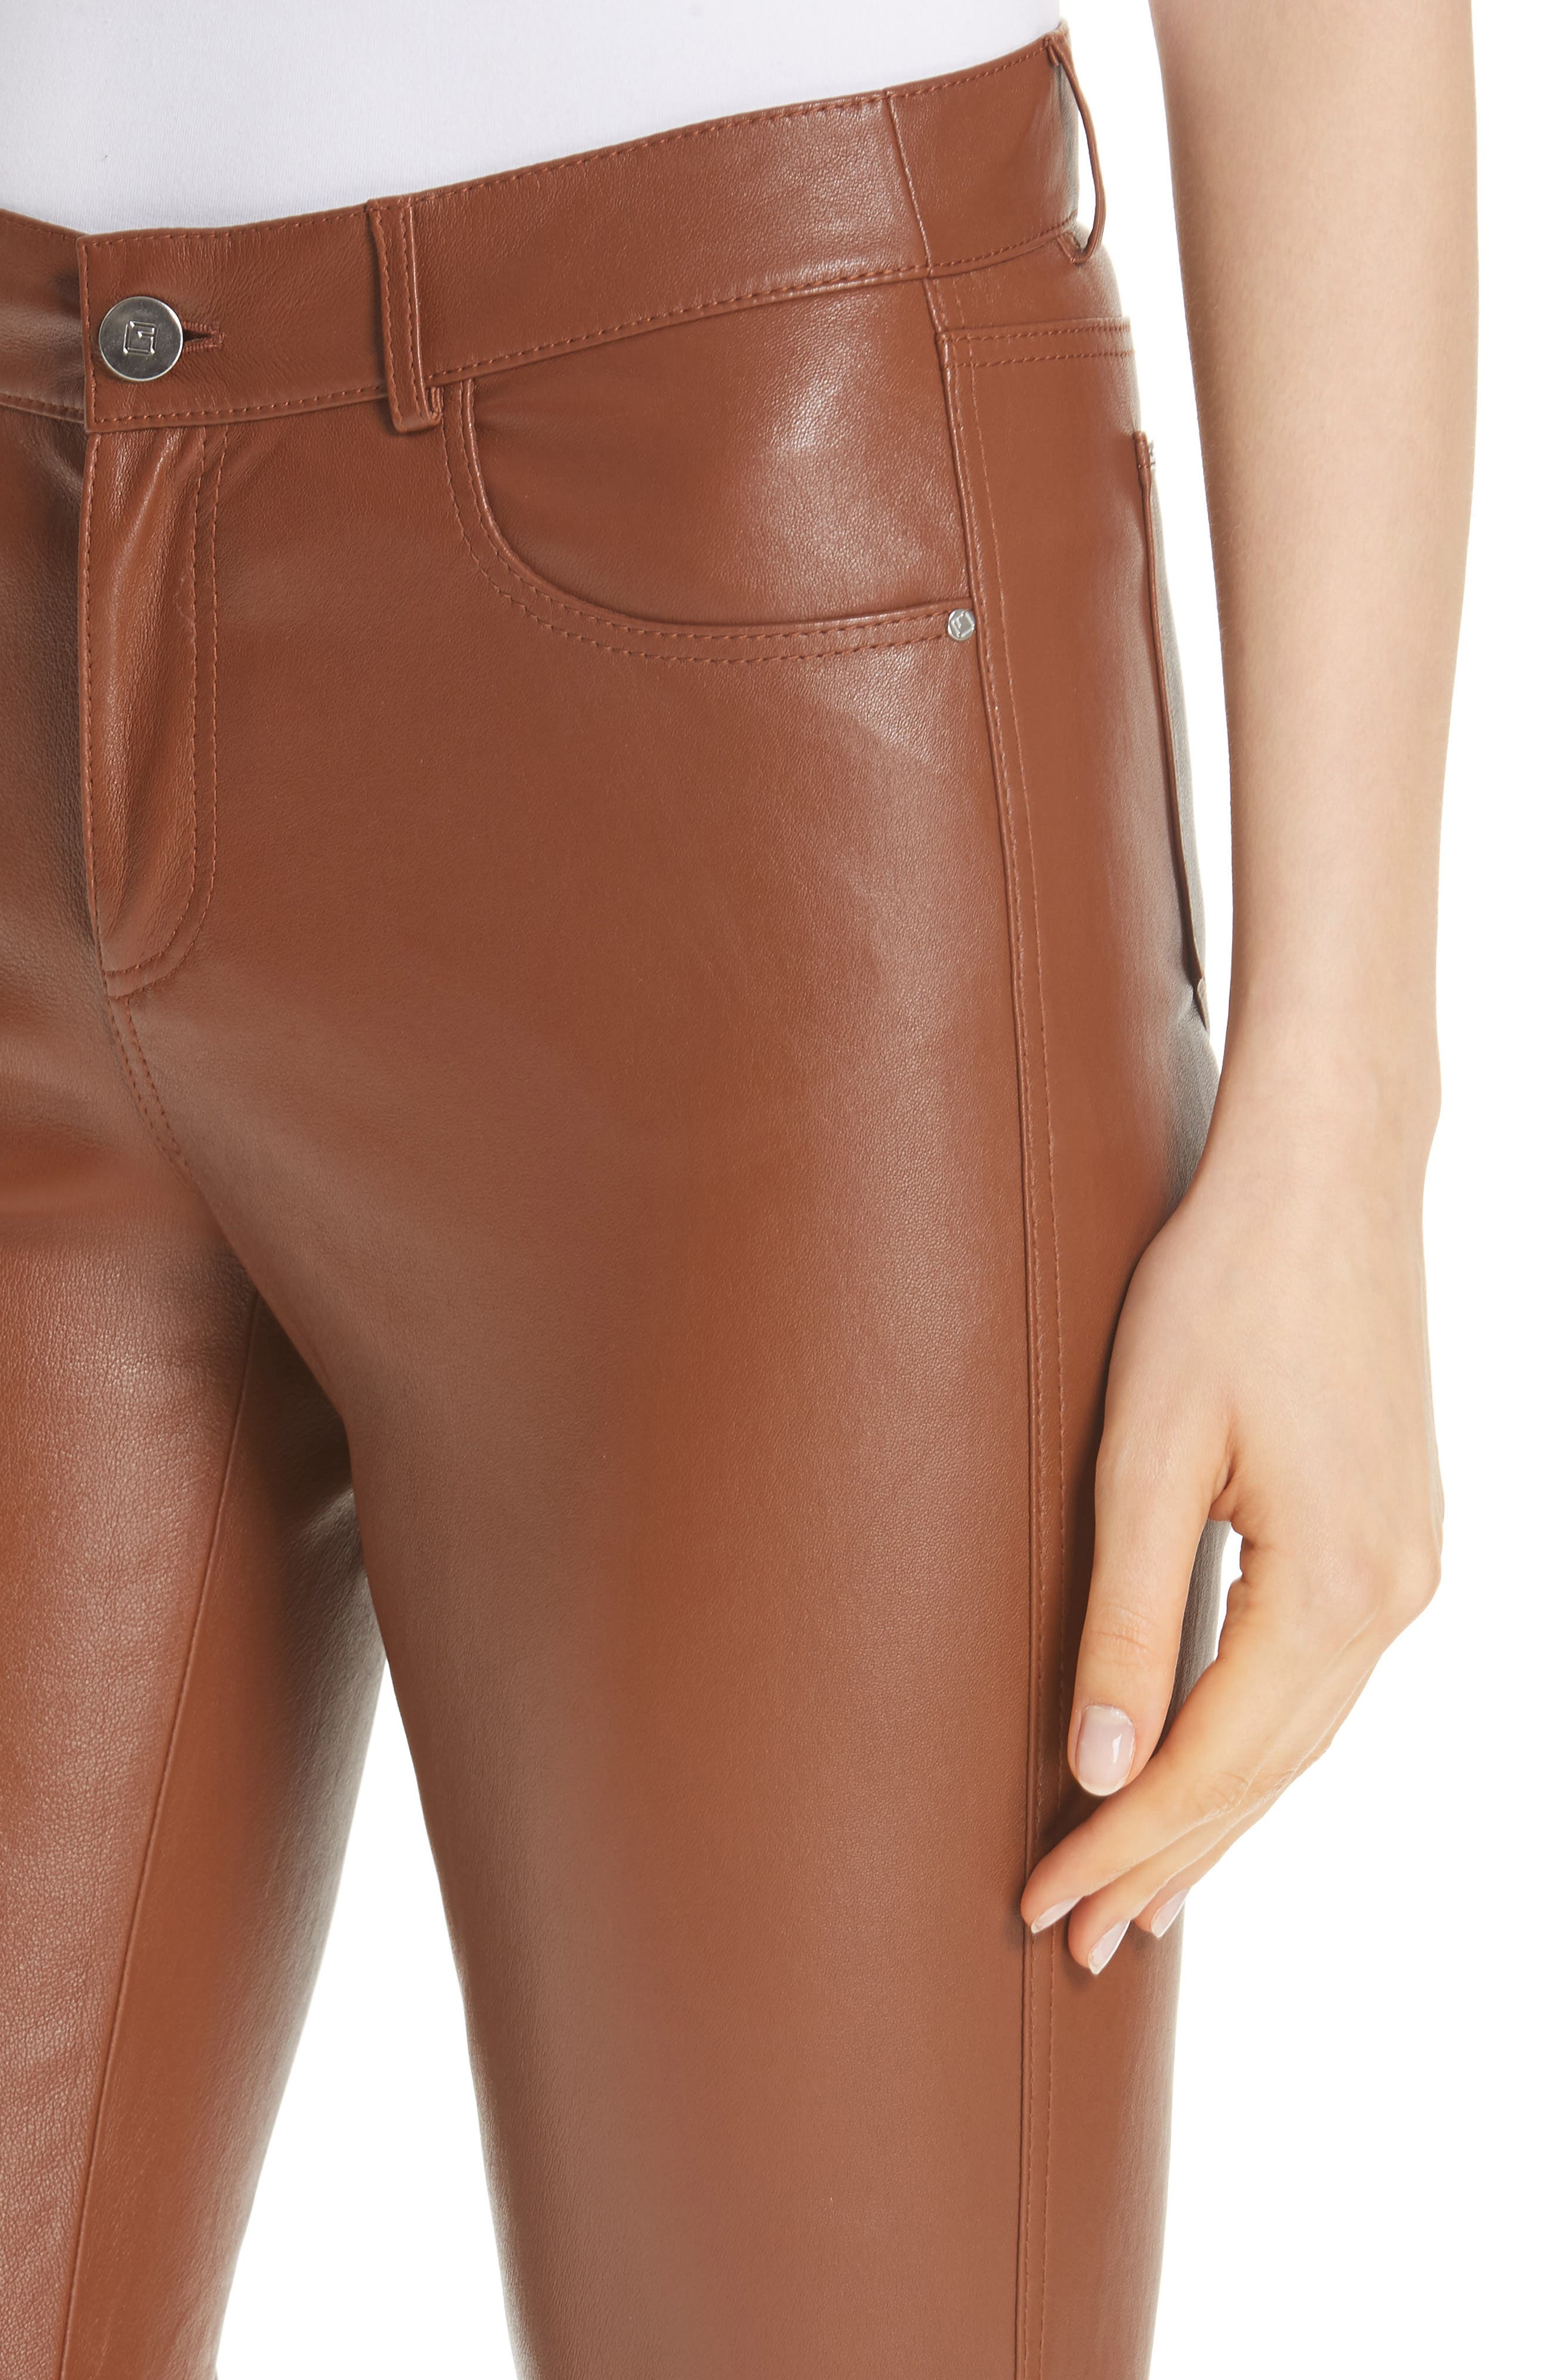 Mercer Nappa Leather Pants,                             Alternate thumbnail 4, color,                             VICUNA